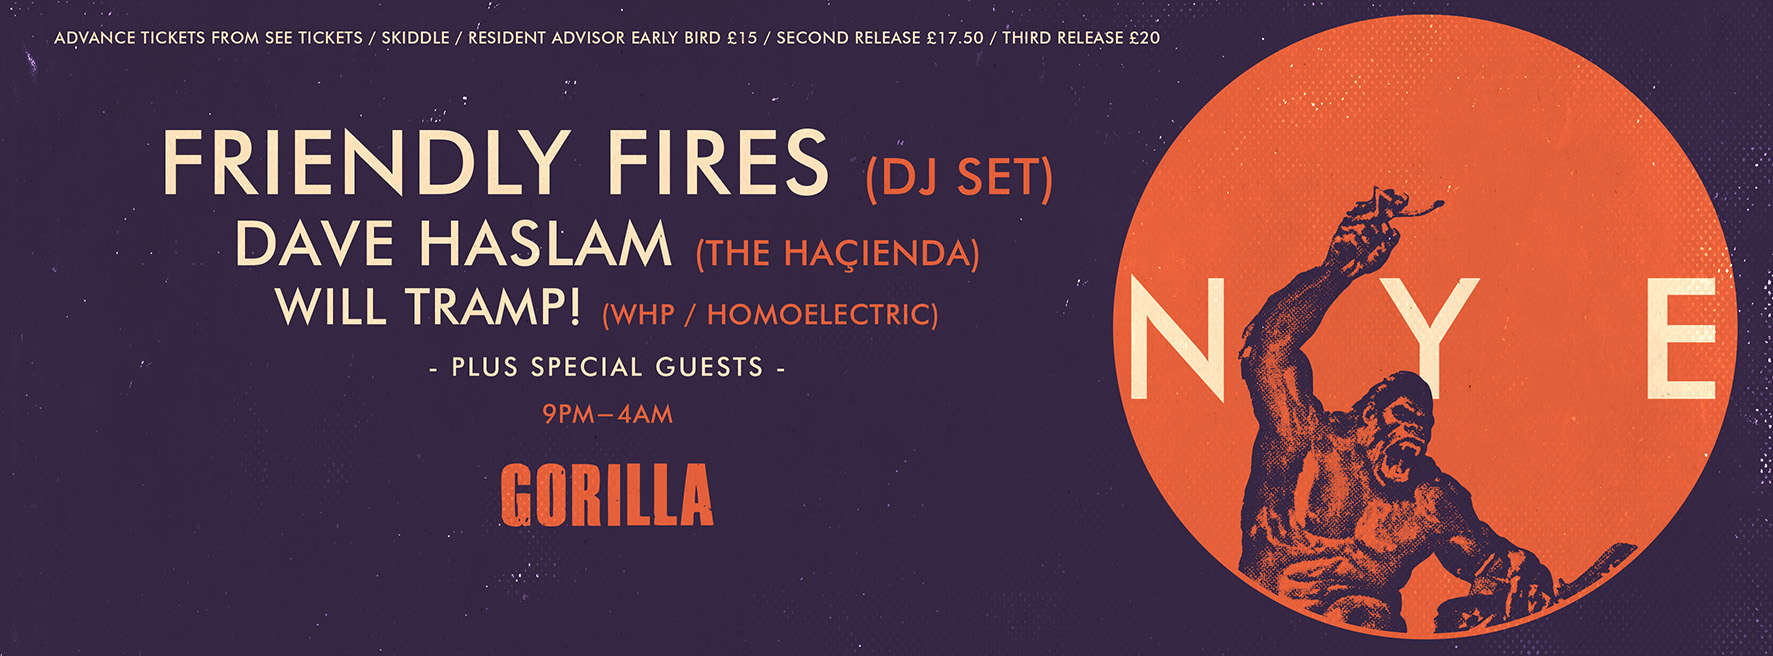 Gorilla's NYE with Friendly Fires! Second release tickets  here